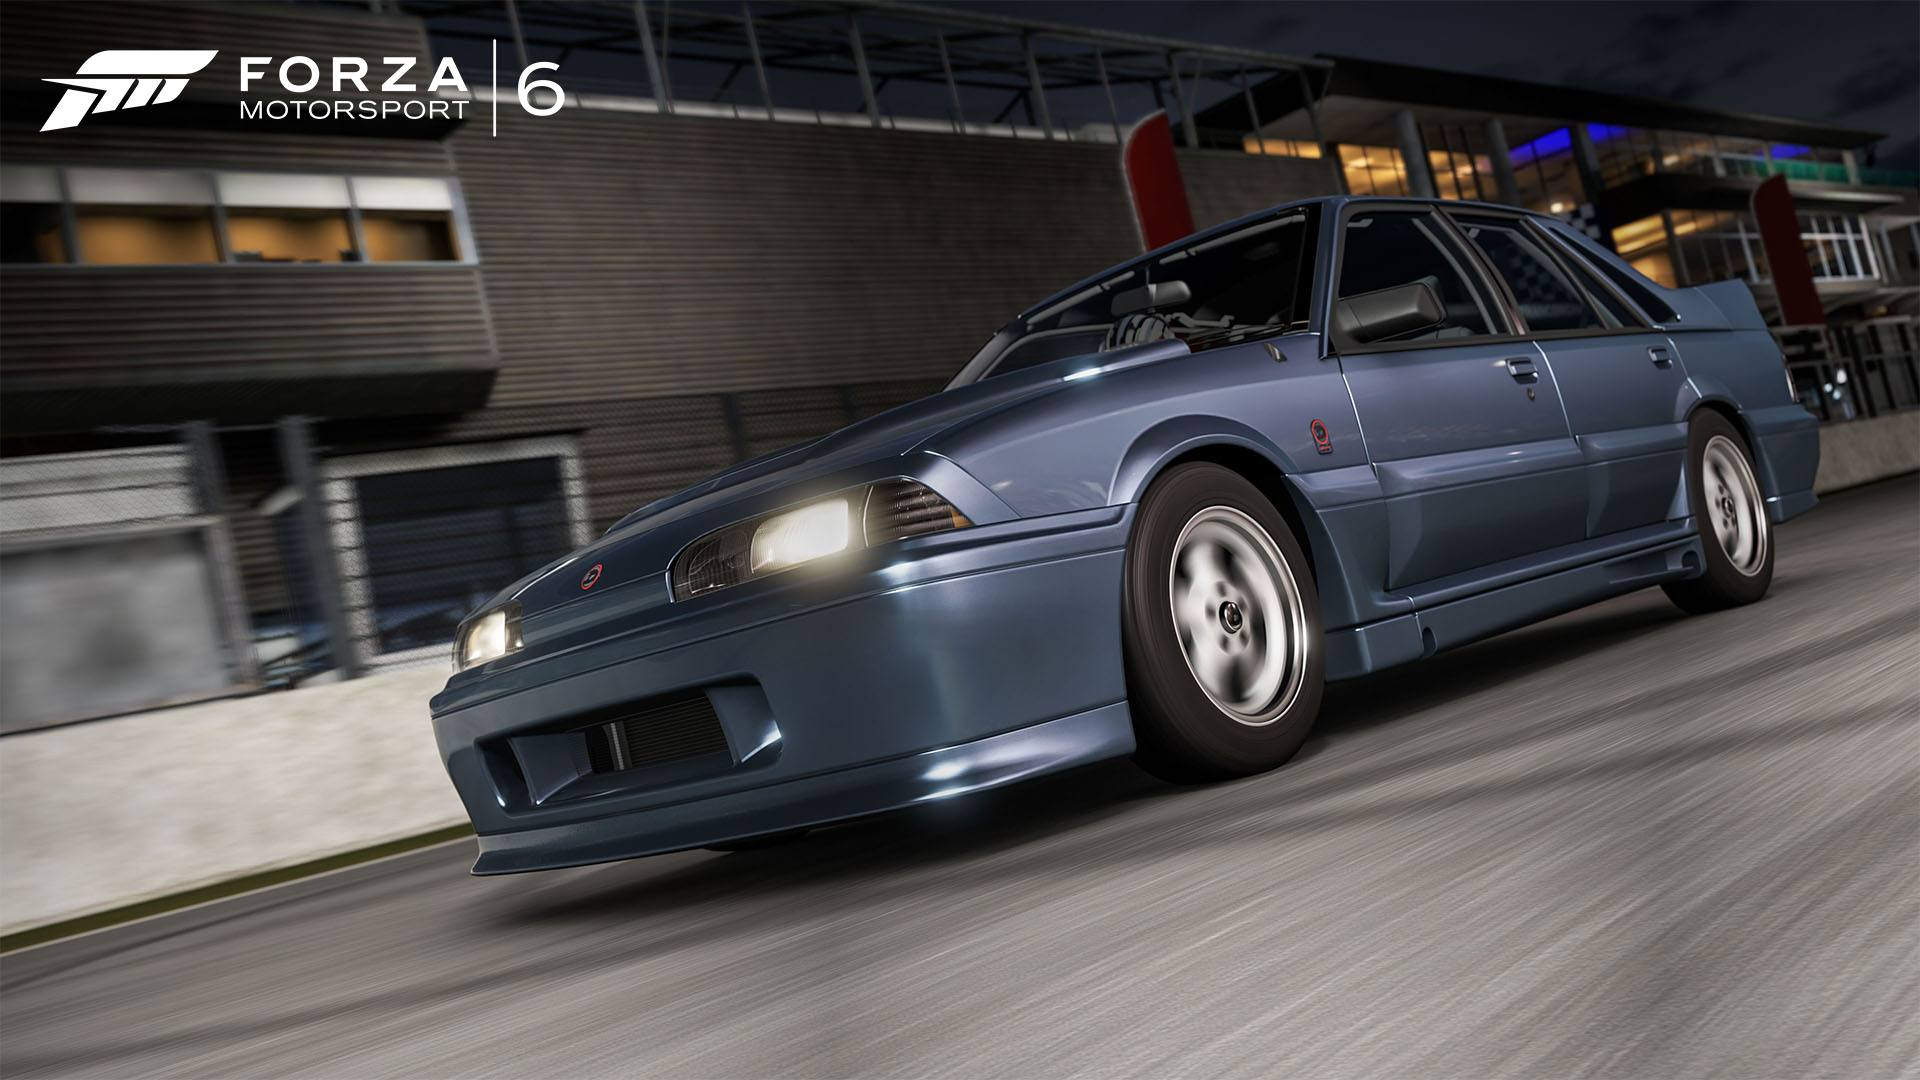 DecDLC_HOL_CommodoreVL_88_Forza6_WM1